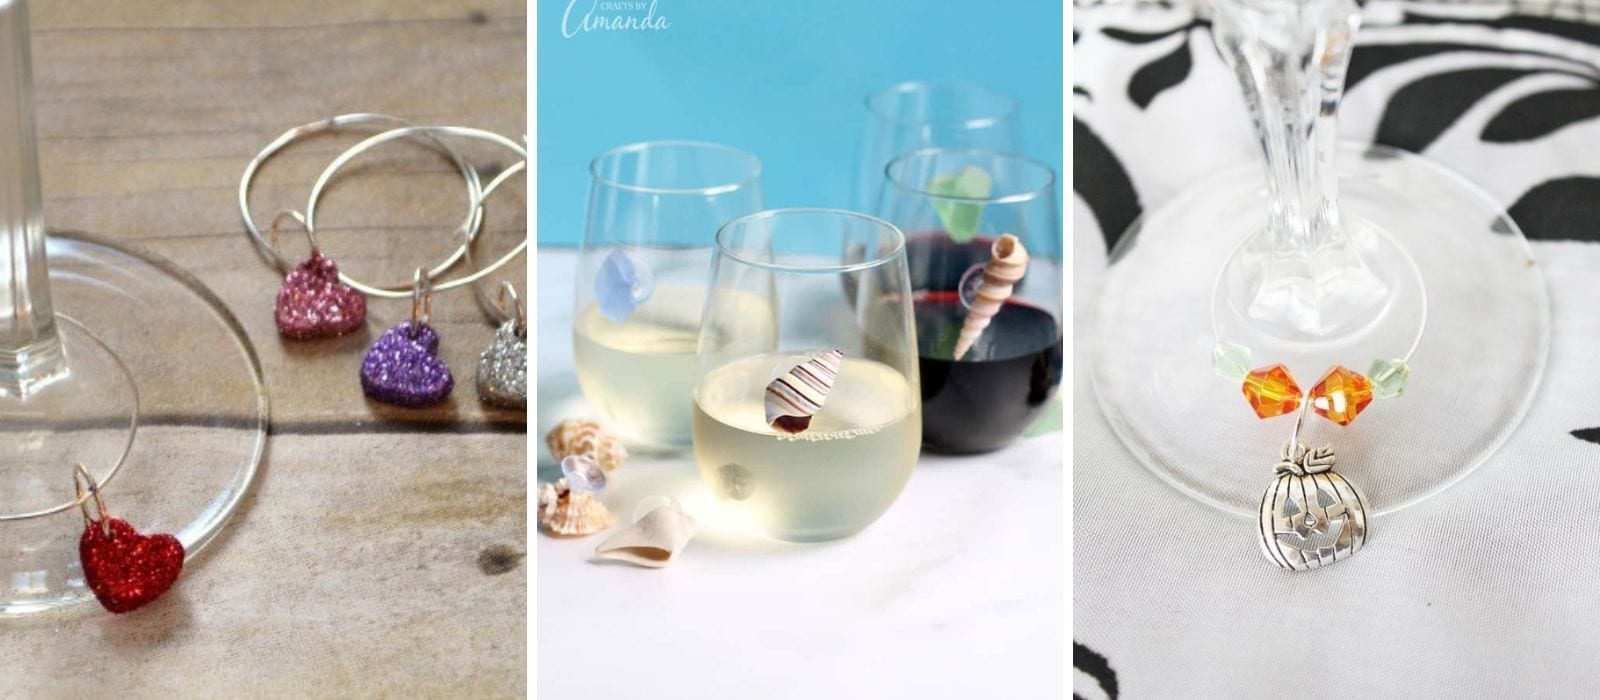 DIY Wine Charm Tutorials| Gift Ideas for Wine Lovers| Best Wine Charms| How to Make Your Own Wine Charm| Wine and Gifts| #wine #winecharm #DIY #giftideas